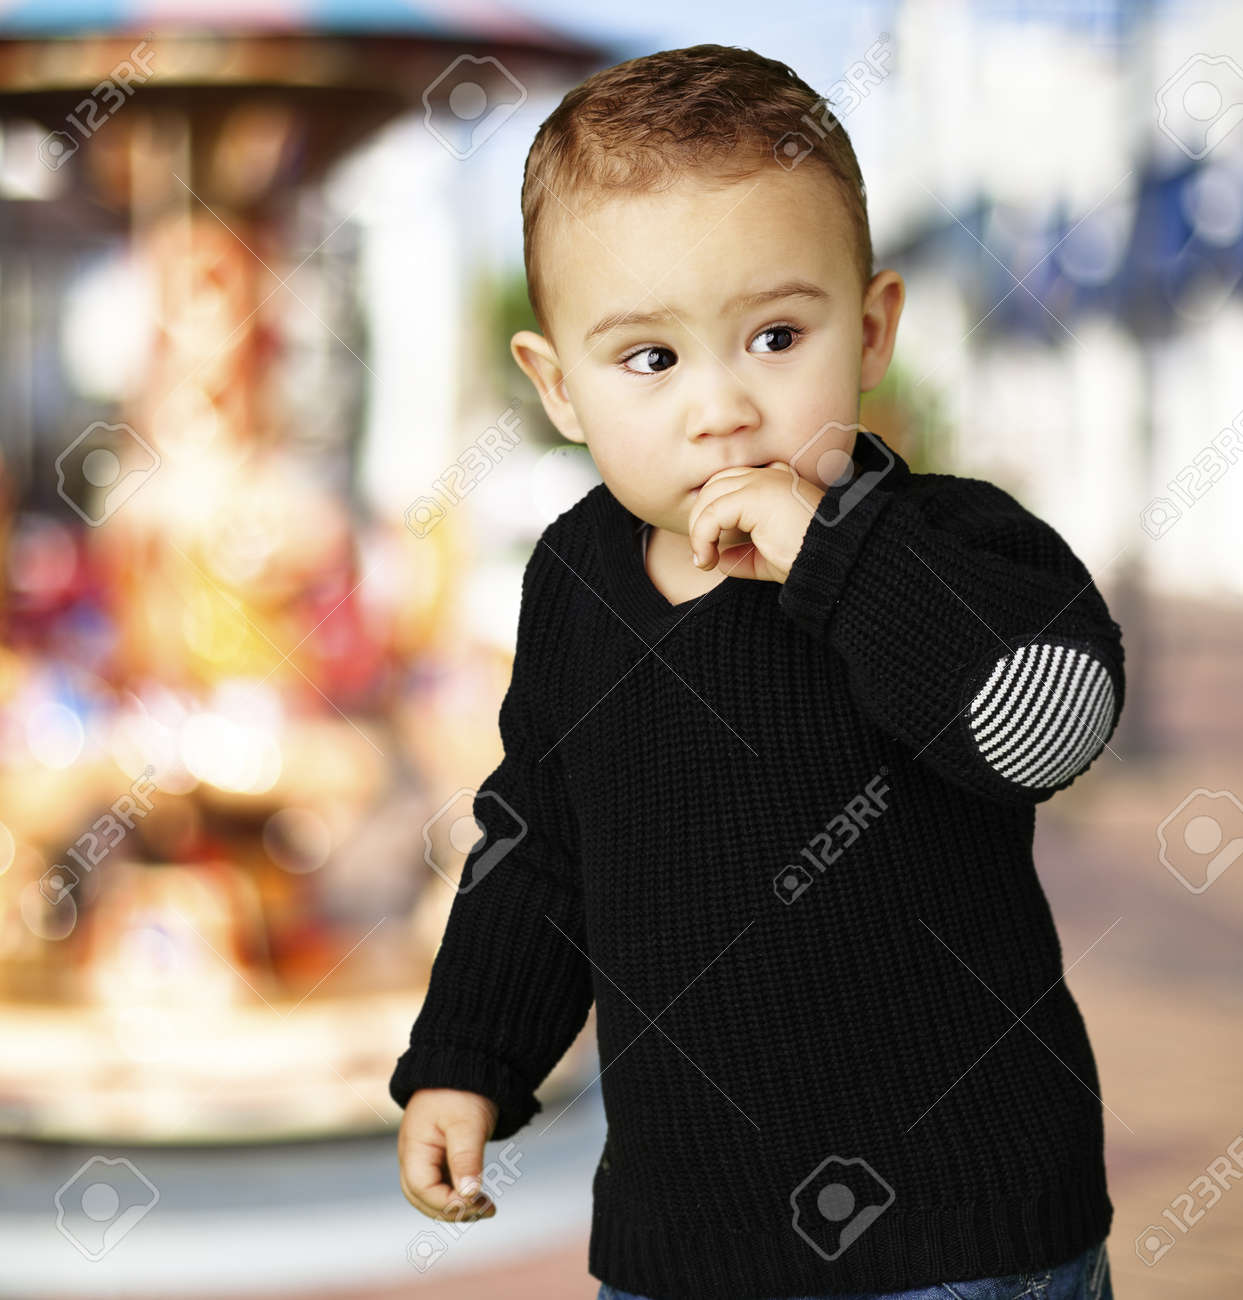 worried little boy against a carousel background Stock Photo - 14438794